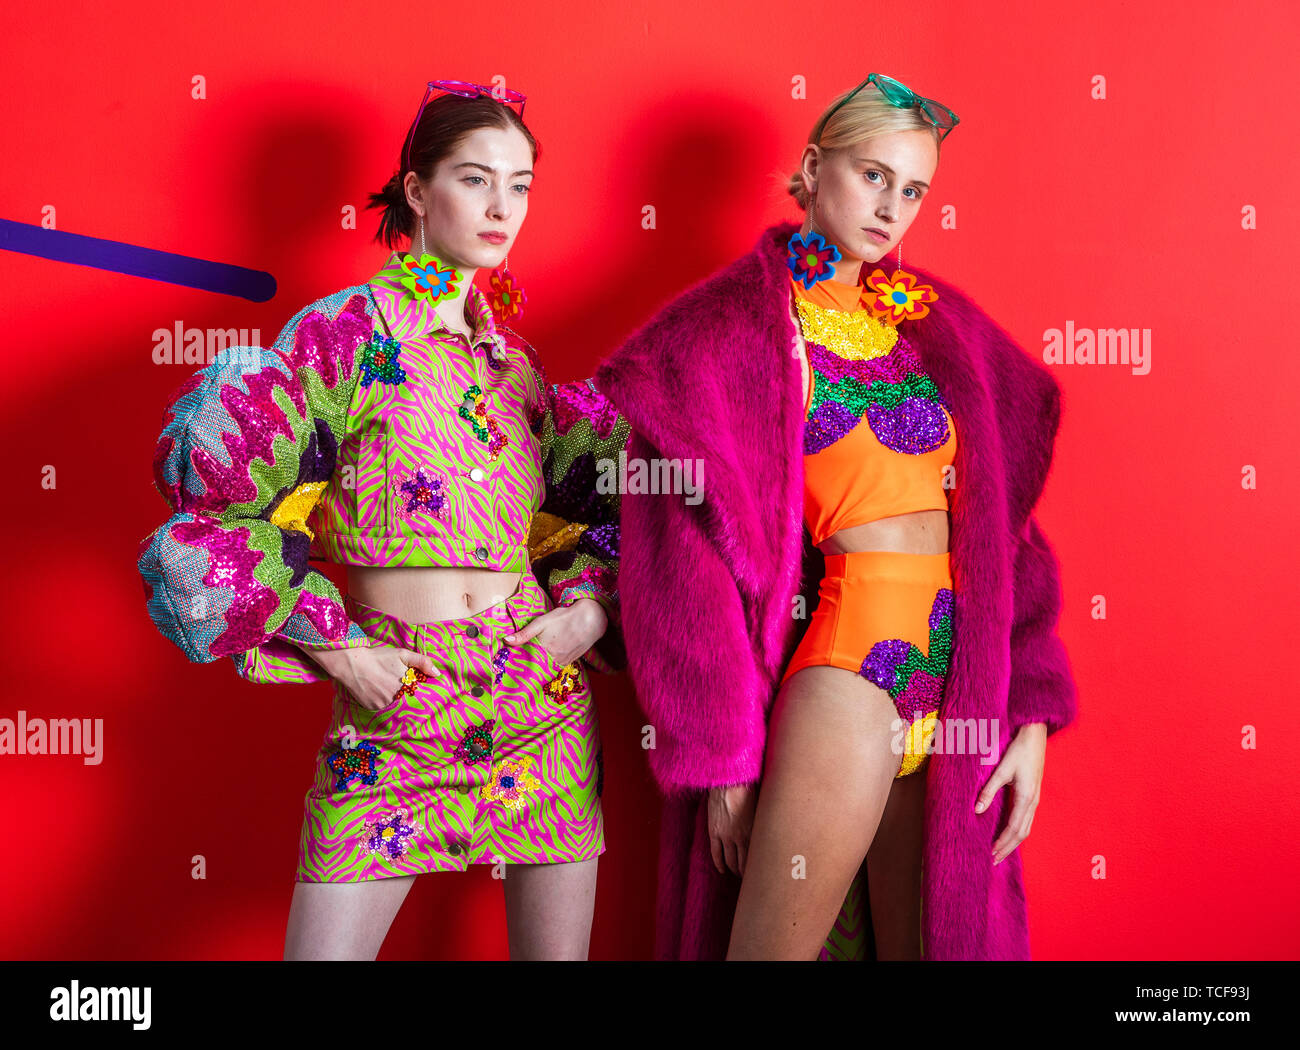 Models Emmie Brookes Left And Robyn Cadman Right Model Designs From The Make Everyday A Festival Collection By Fashion Designer Laura Shannon Harding Ahead Of The Leeds Arts University Graduate Fashion Show Stock